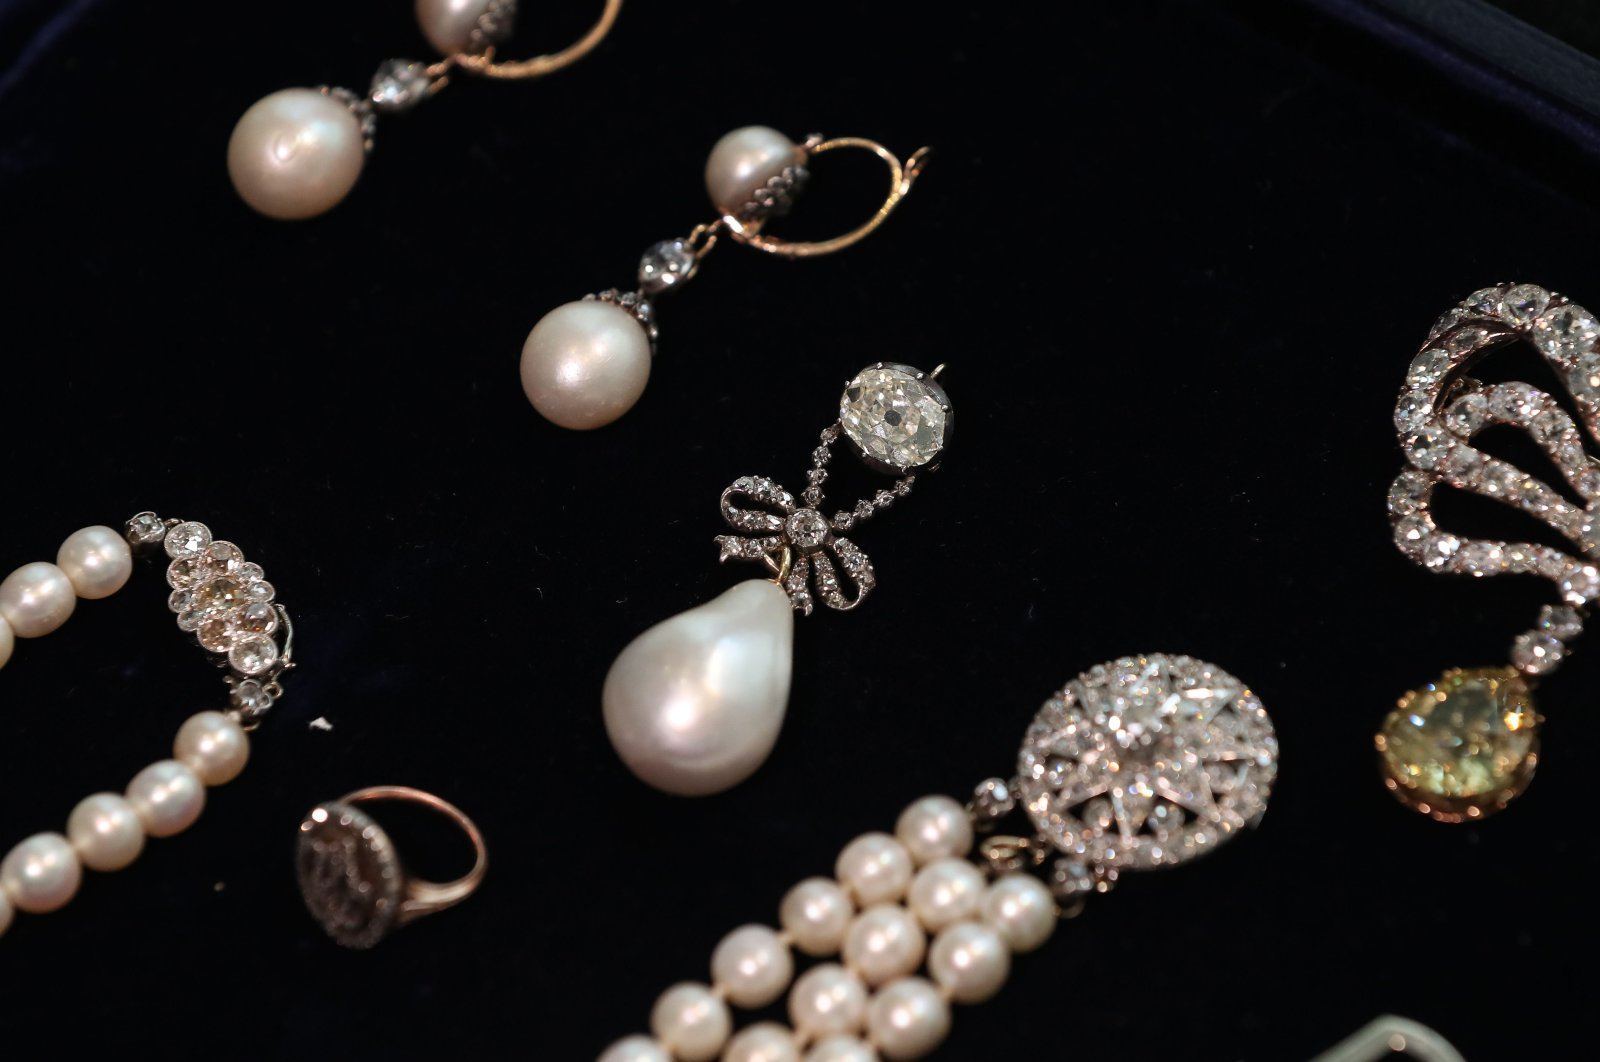 """In this file photo, an assortment of jewelry including """"Queen Marie Antoinette's Pearl"""" (C) is pictured at Sotheby's auction house in London, Britain, Oct. 19, 2018. (AFP Photo)"""